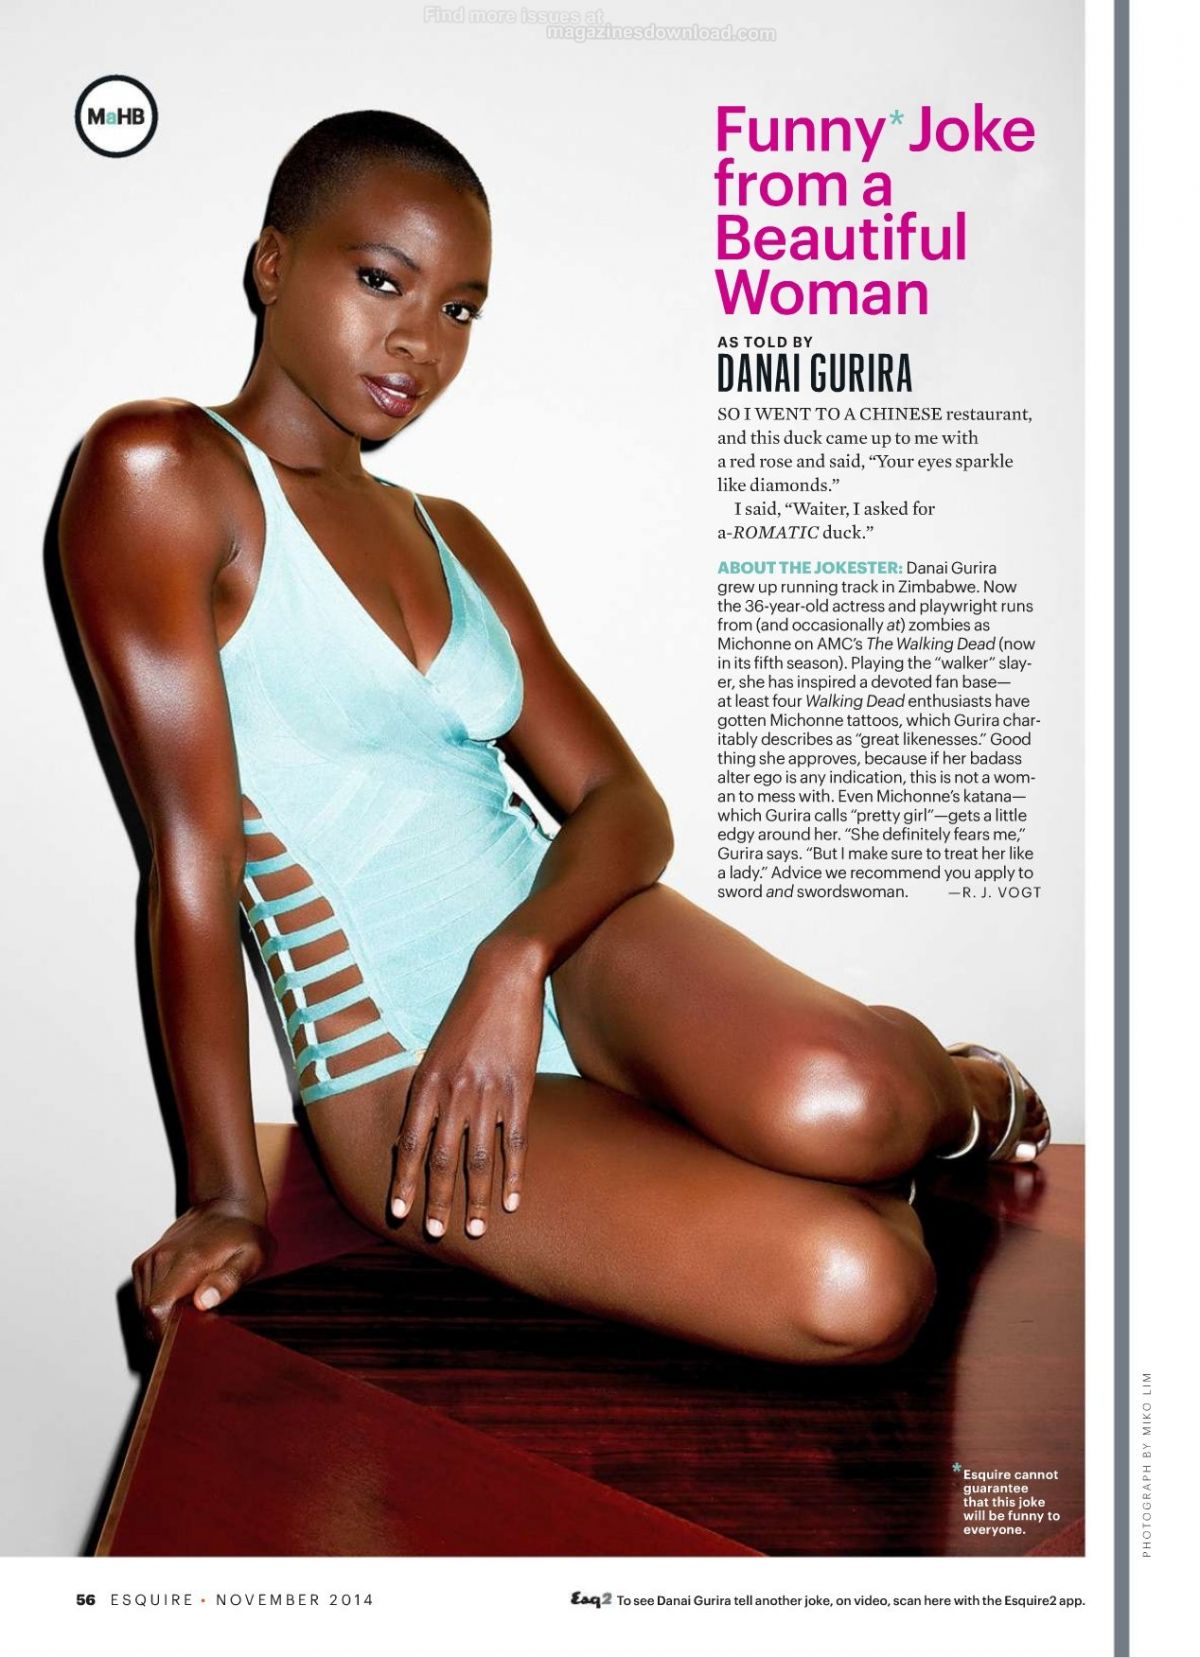 DANAI GURIRA in Esquire Magazine, November 2014 Issue